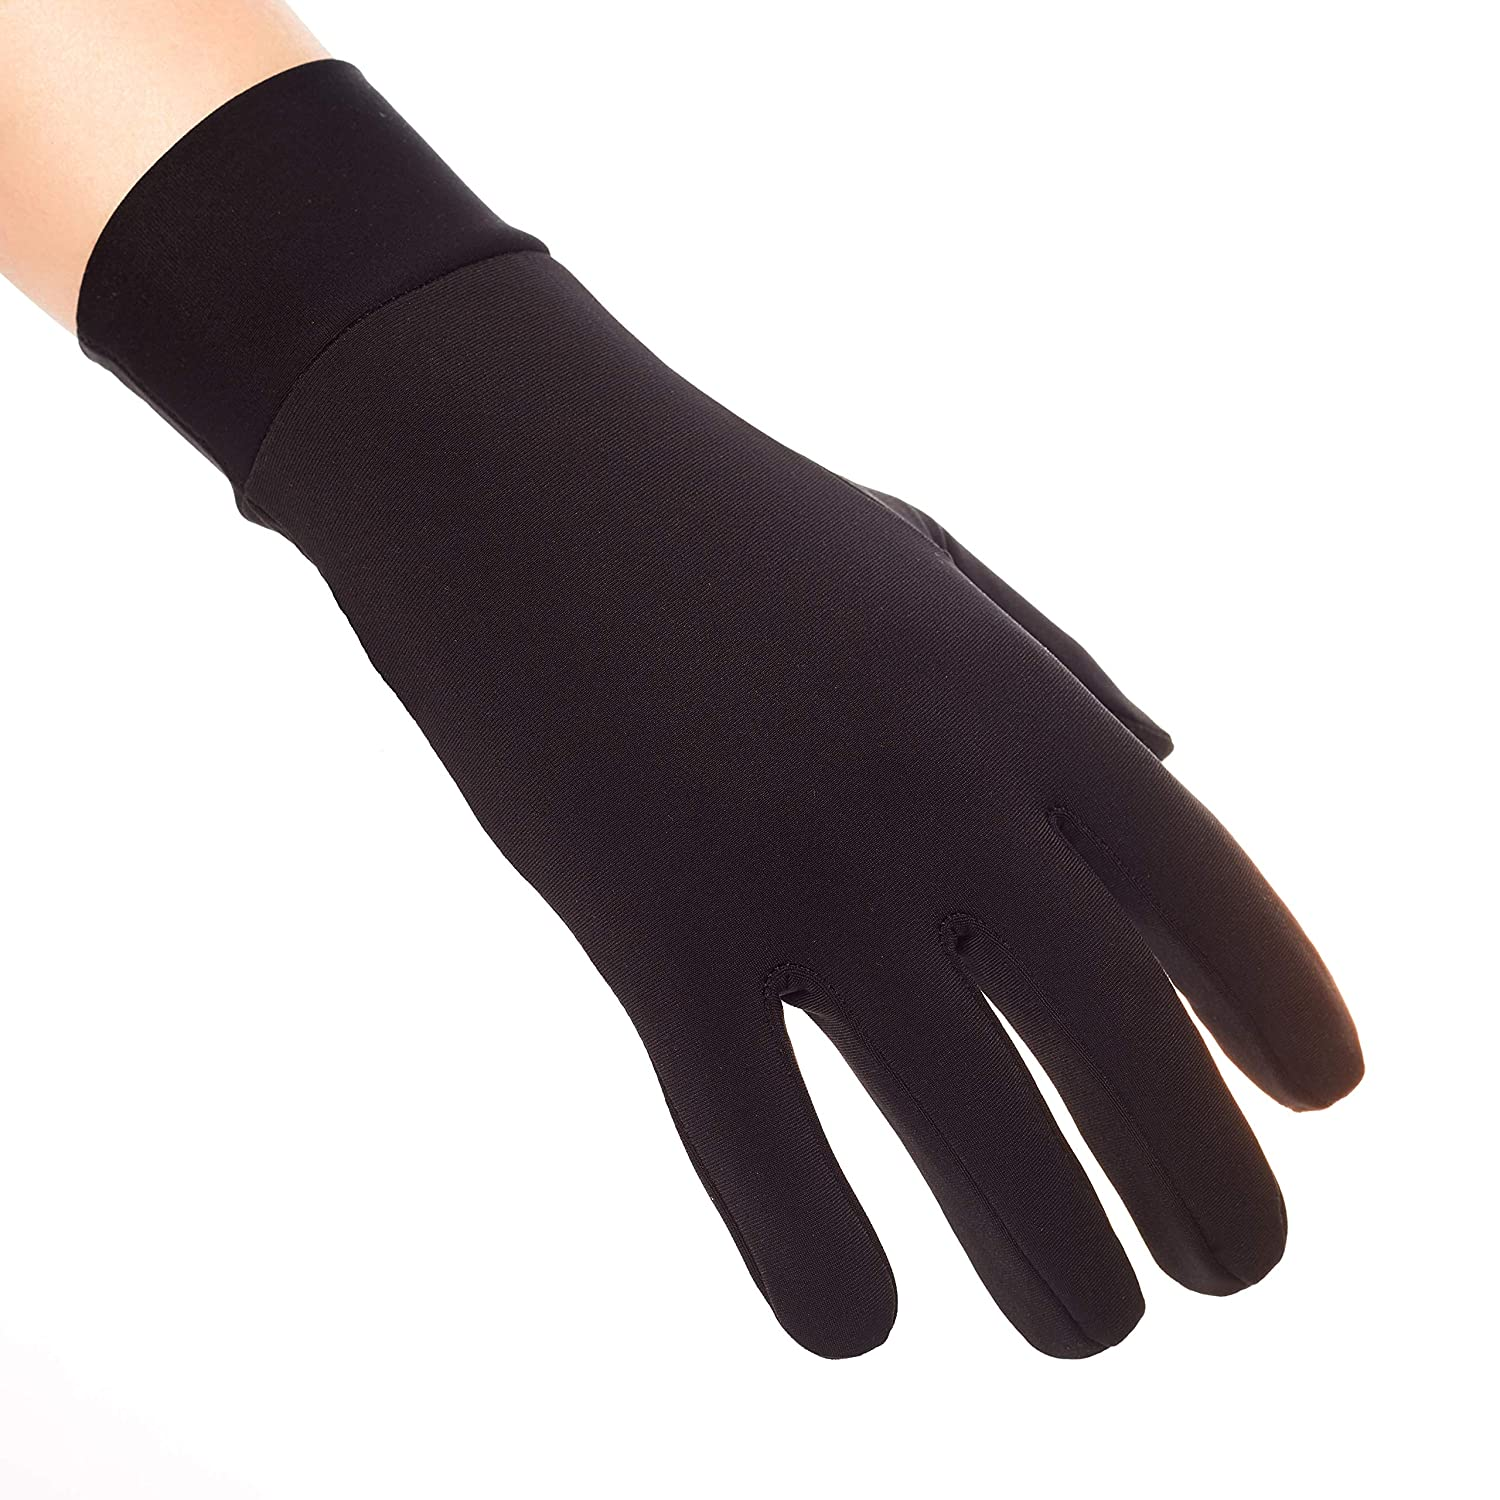 Highloong Compression Glove Liners